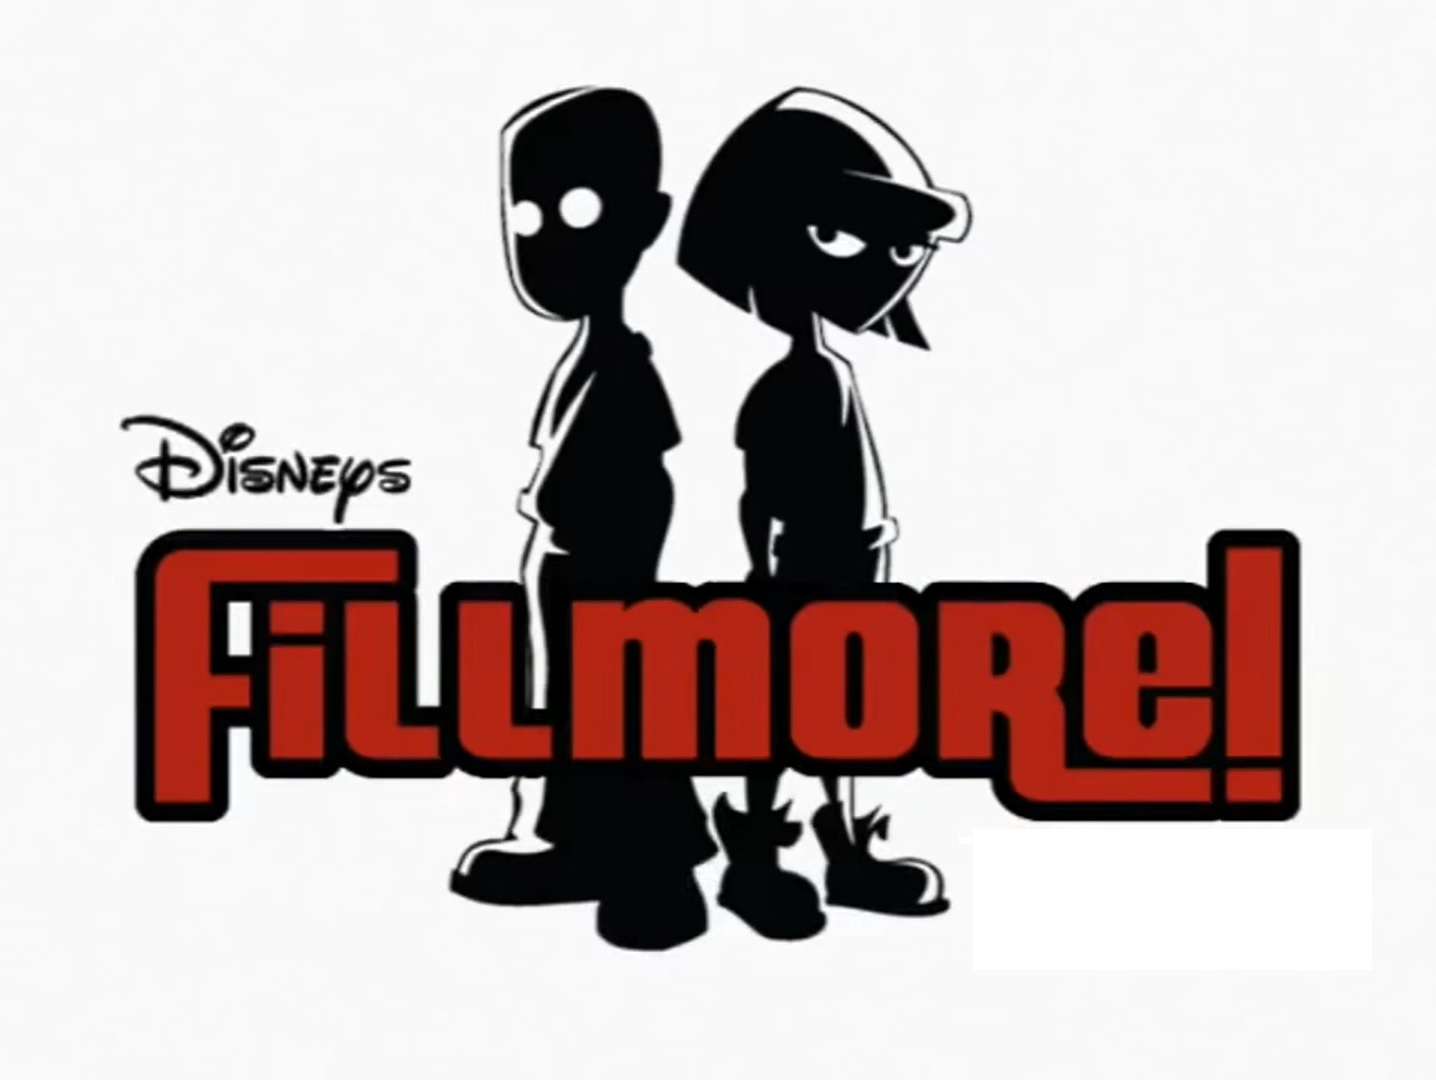 File:Fillmore!.jpg